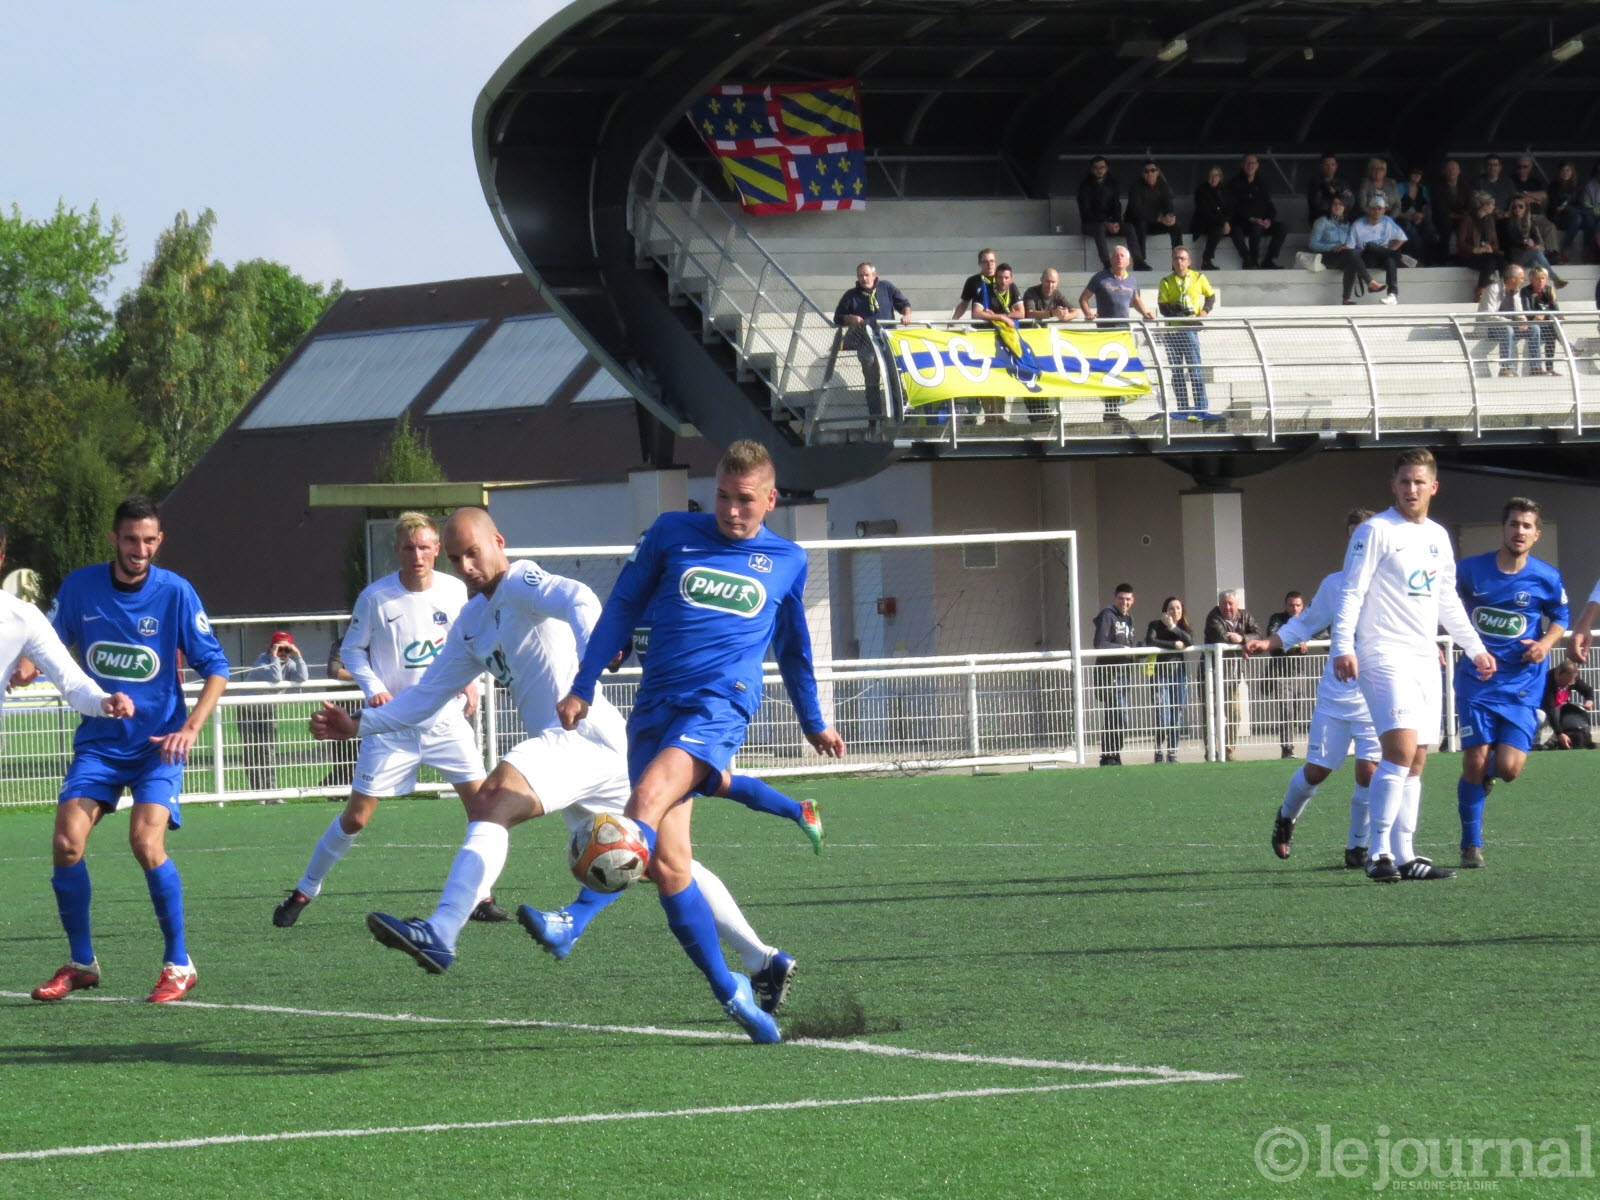 Coupe de france 4e tour chatenoy lr 0 3 fcg r sultat - Resultats coupe de france 2015 ...